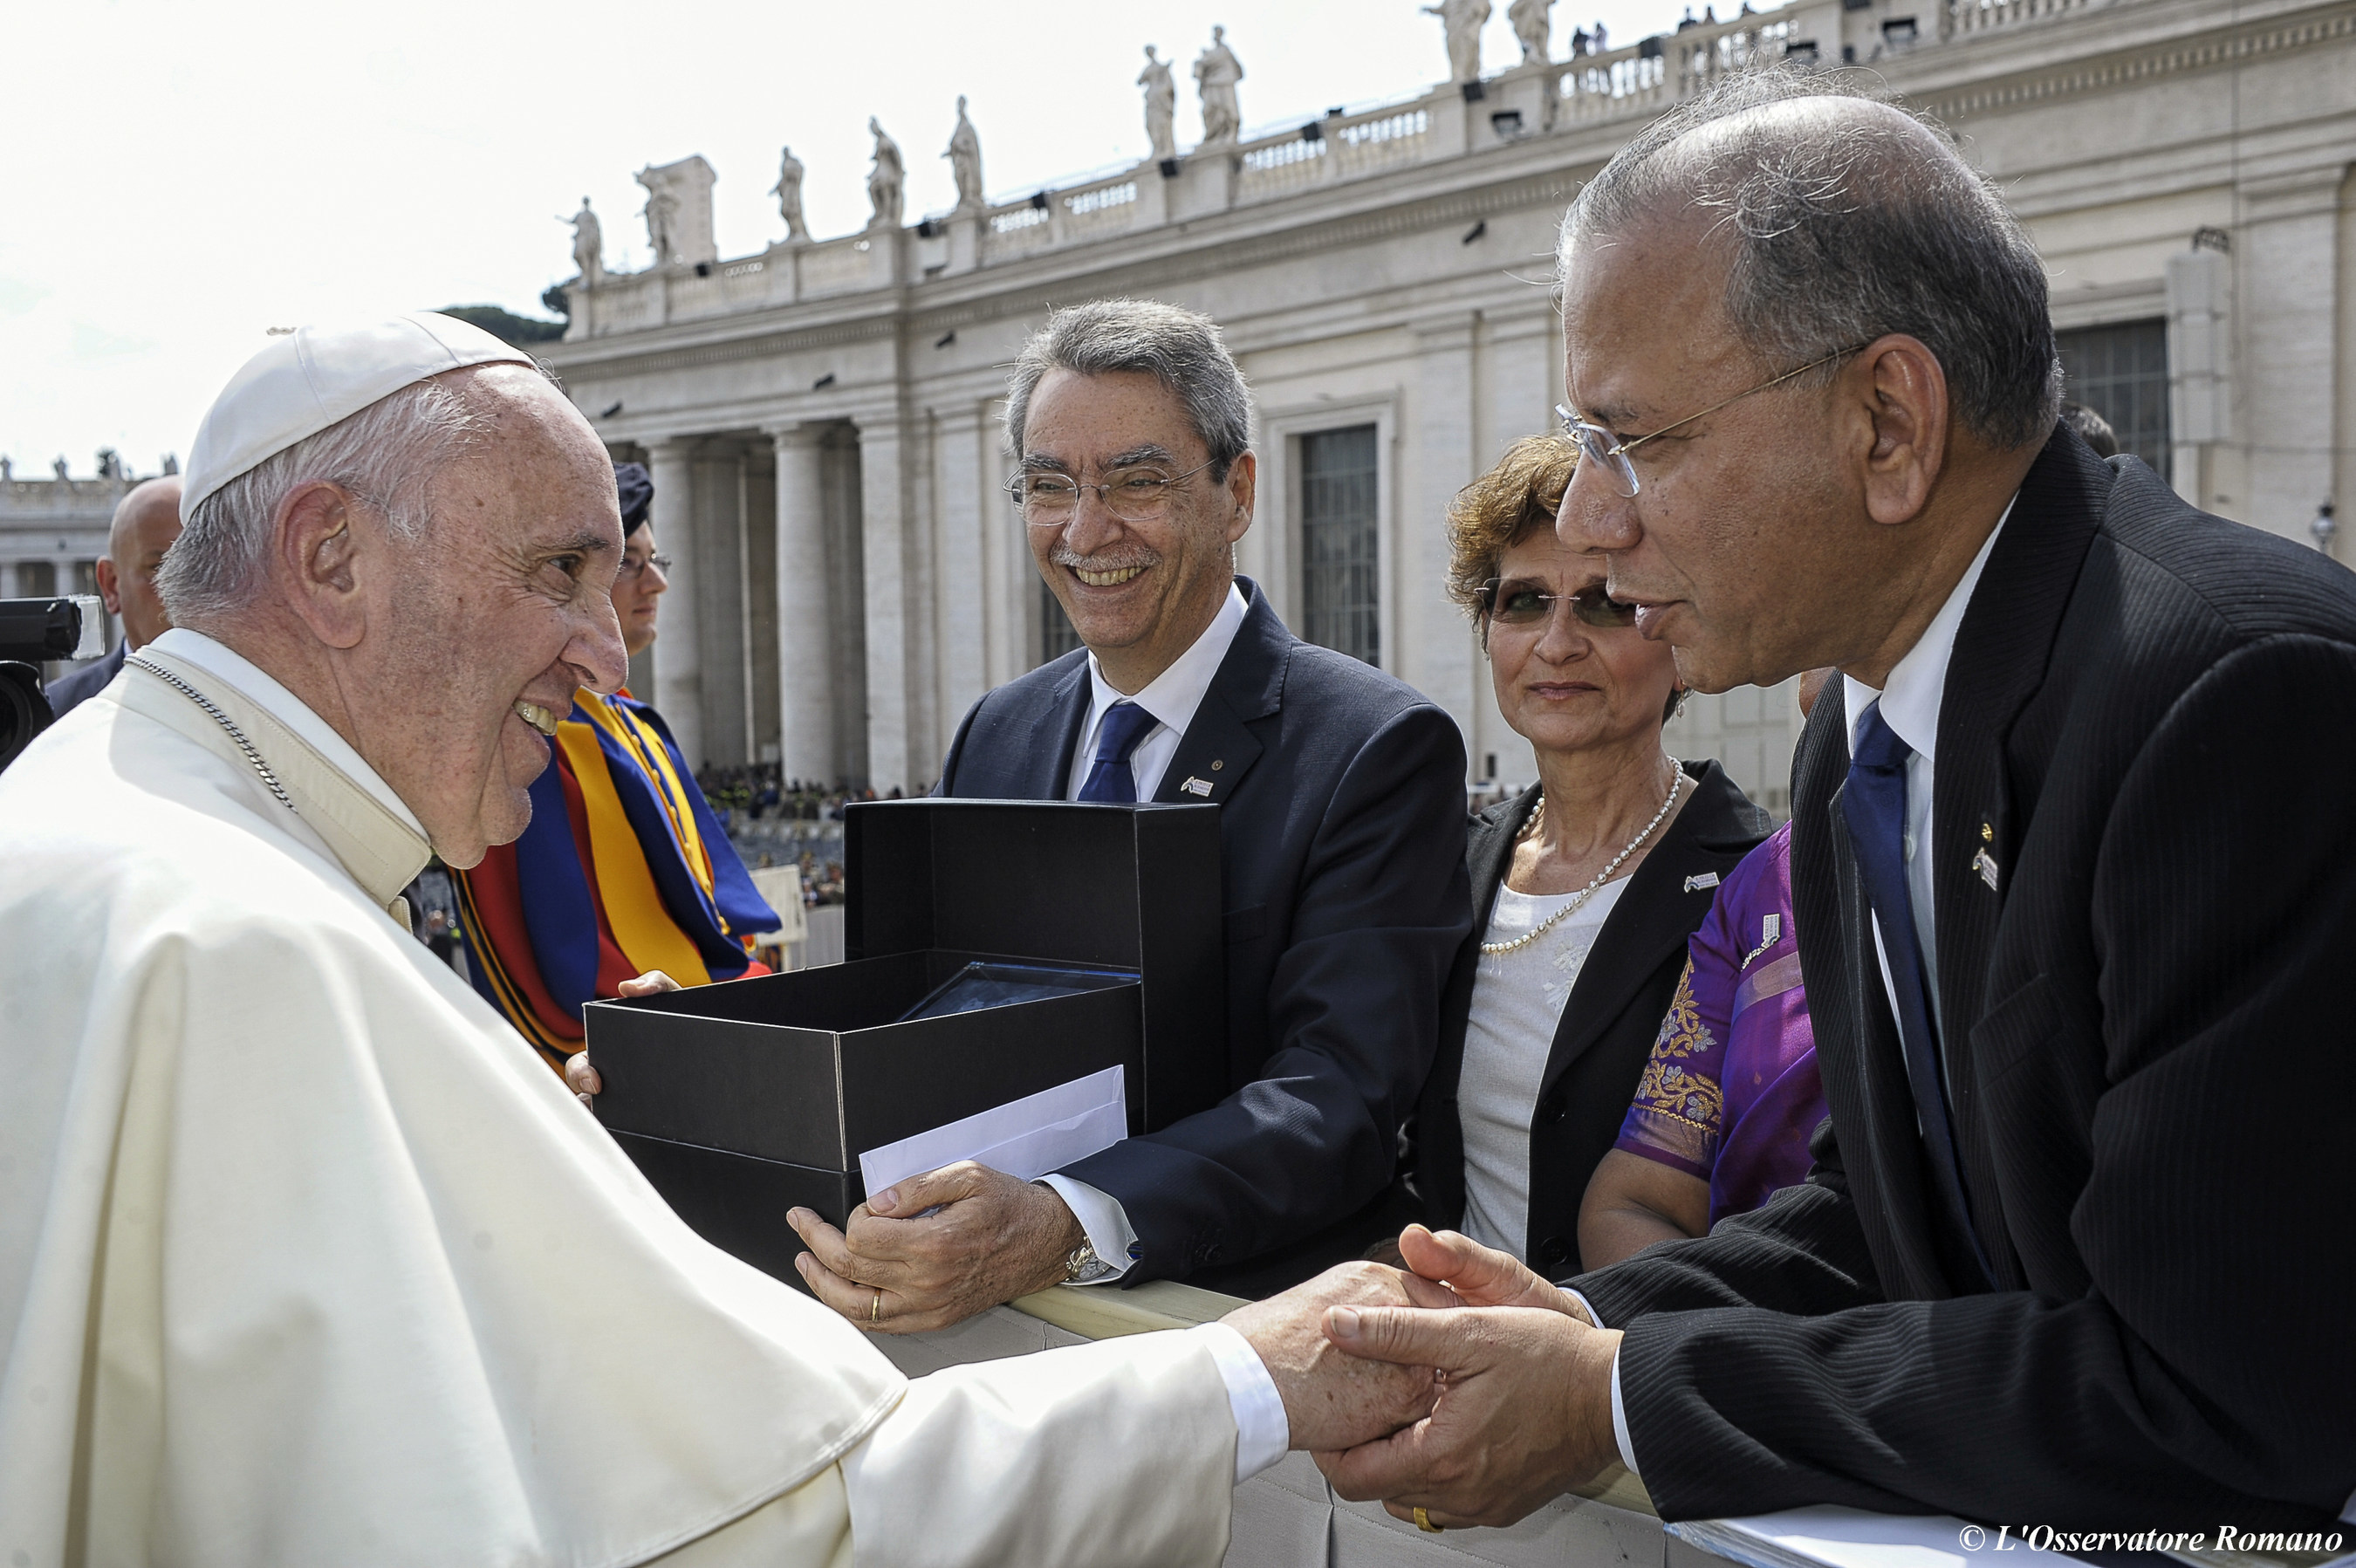 Rotary International President K.R. Ravindran is greeted by Pope Francis following the Jubilee Audience at the Vatican in St. Peter's Square on April 30, 2016. Photo courtesy of the Vatican.